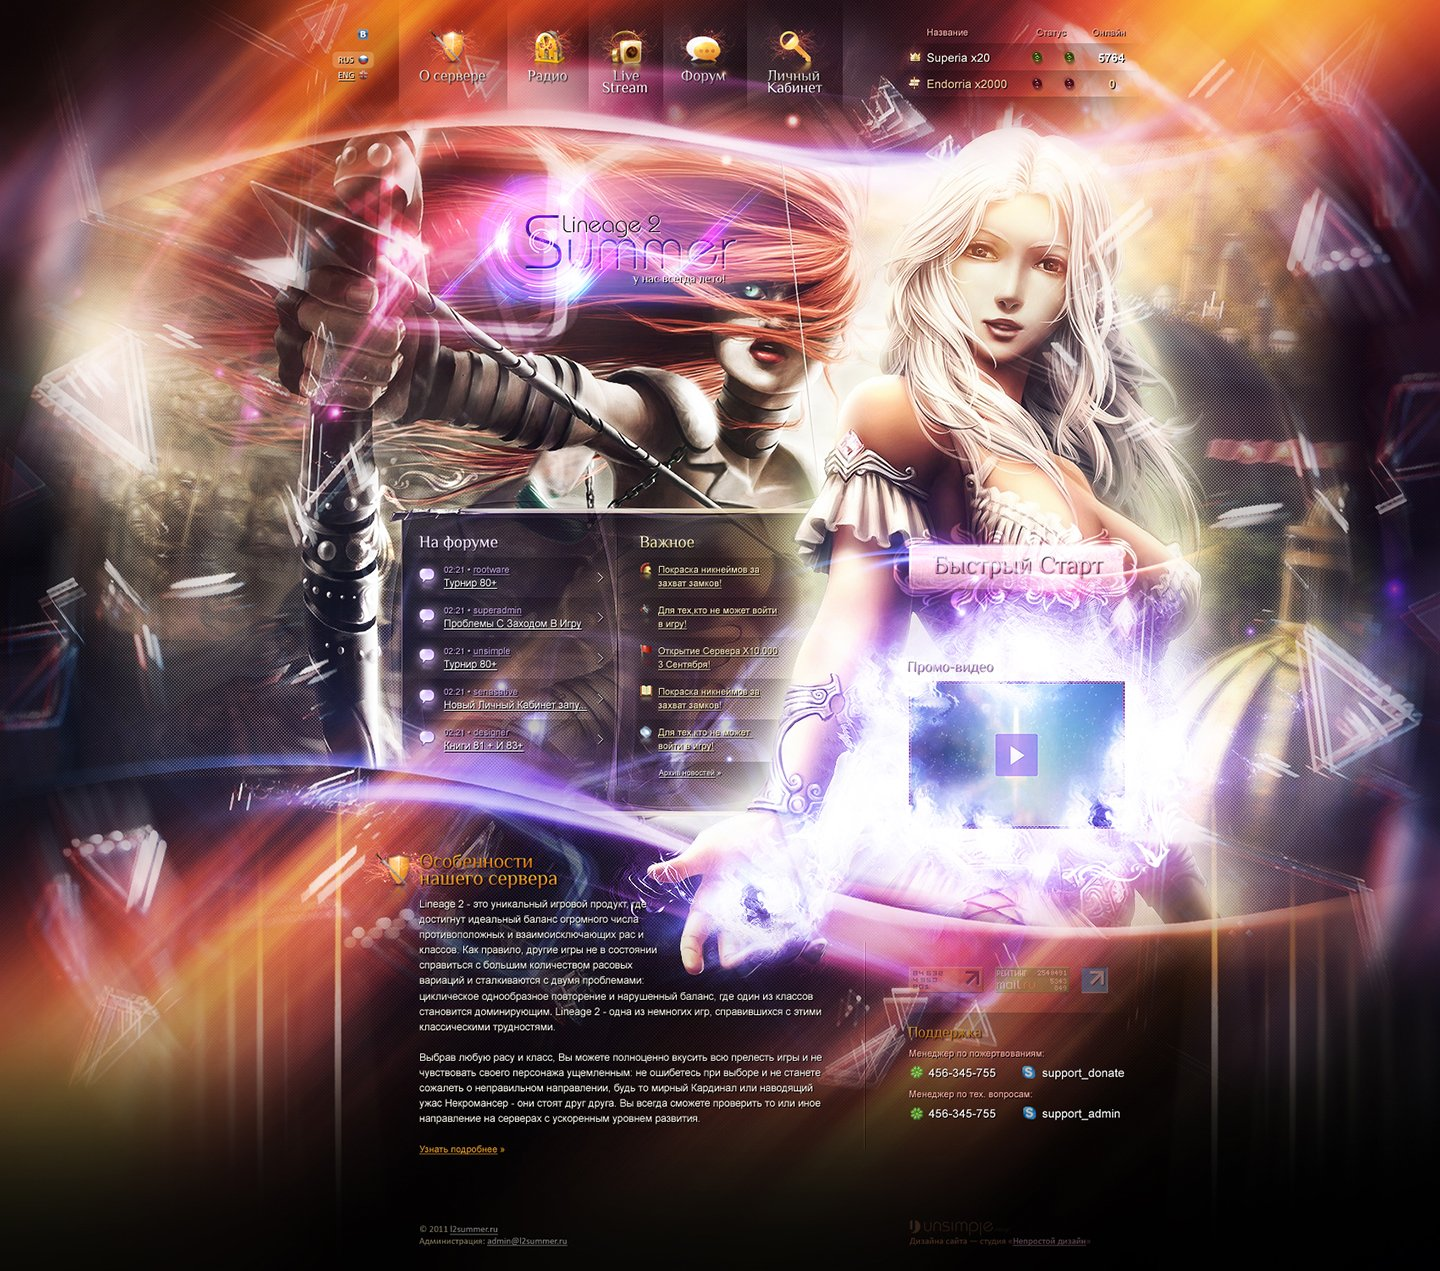 L2Summer > Website design for Lineage 2 private server. Main page